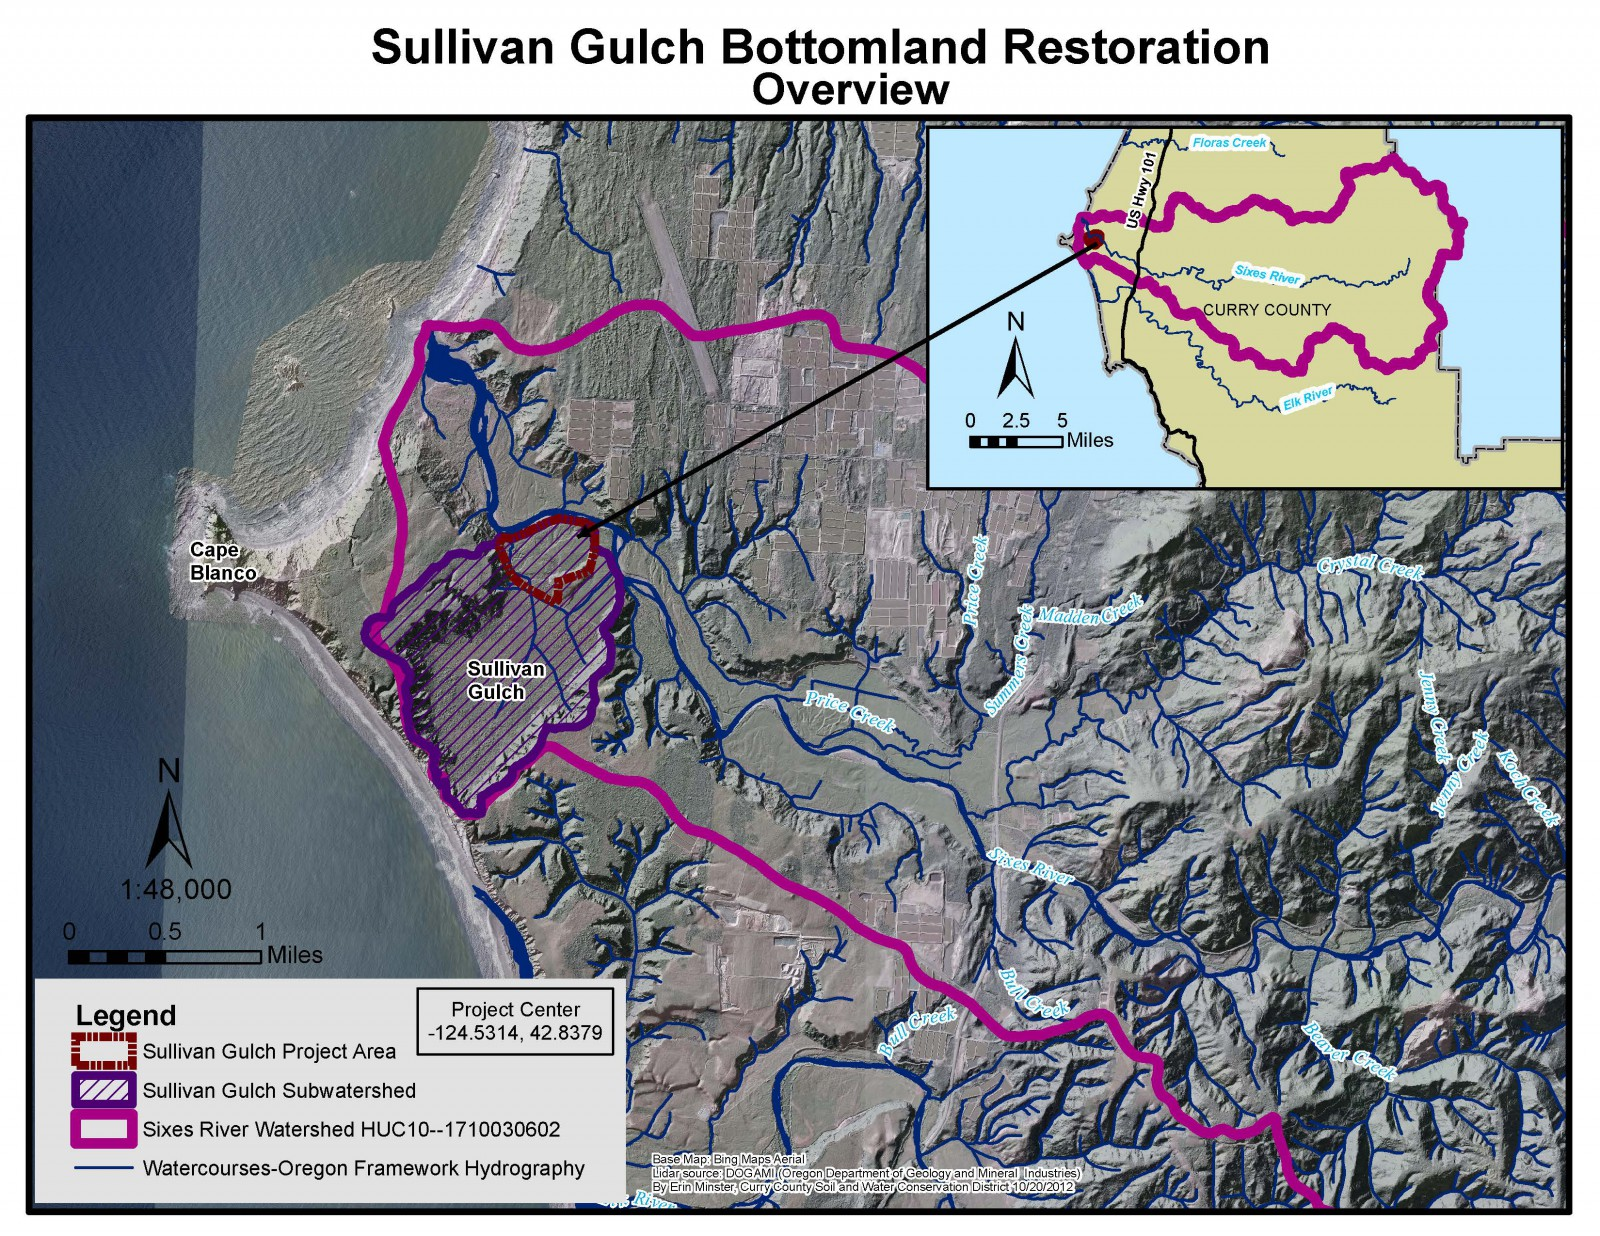 Sullivan Gulch Bottomland Restoration, Sixes River, OR (2015)